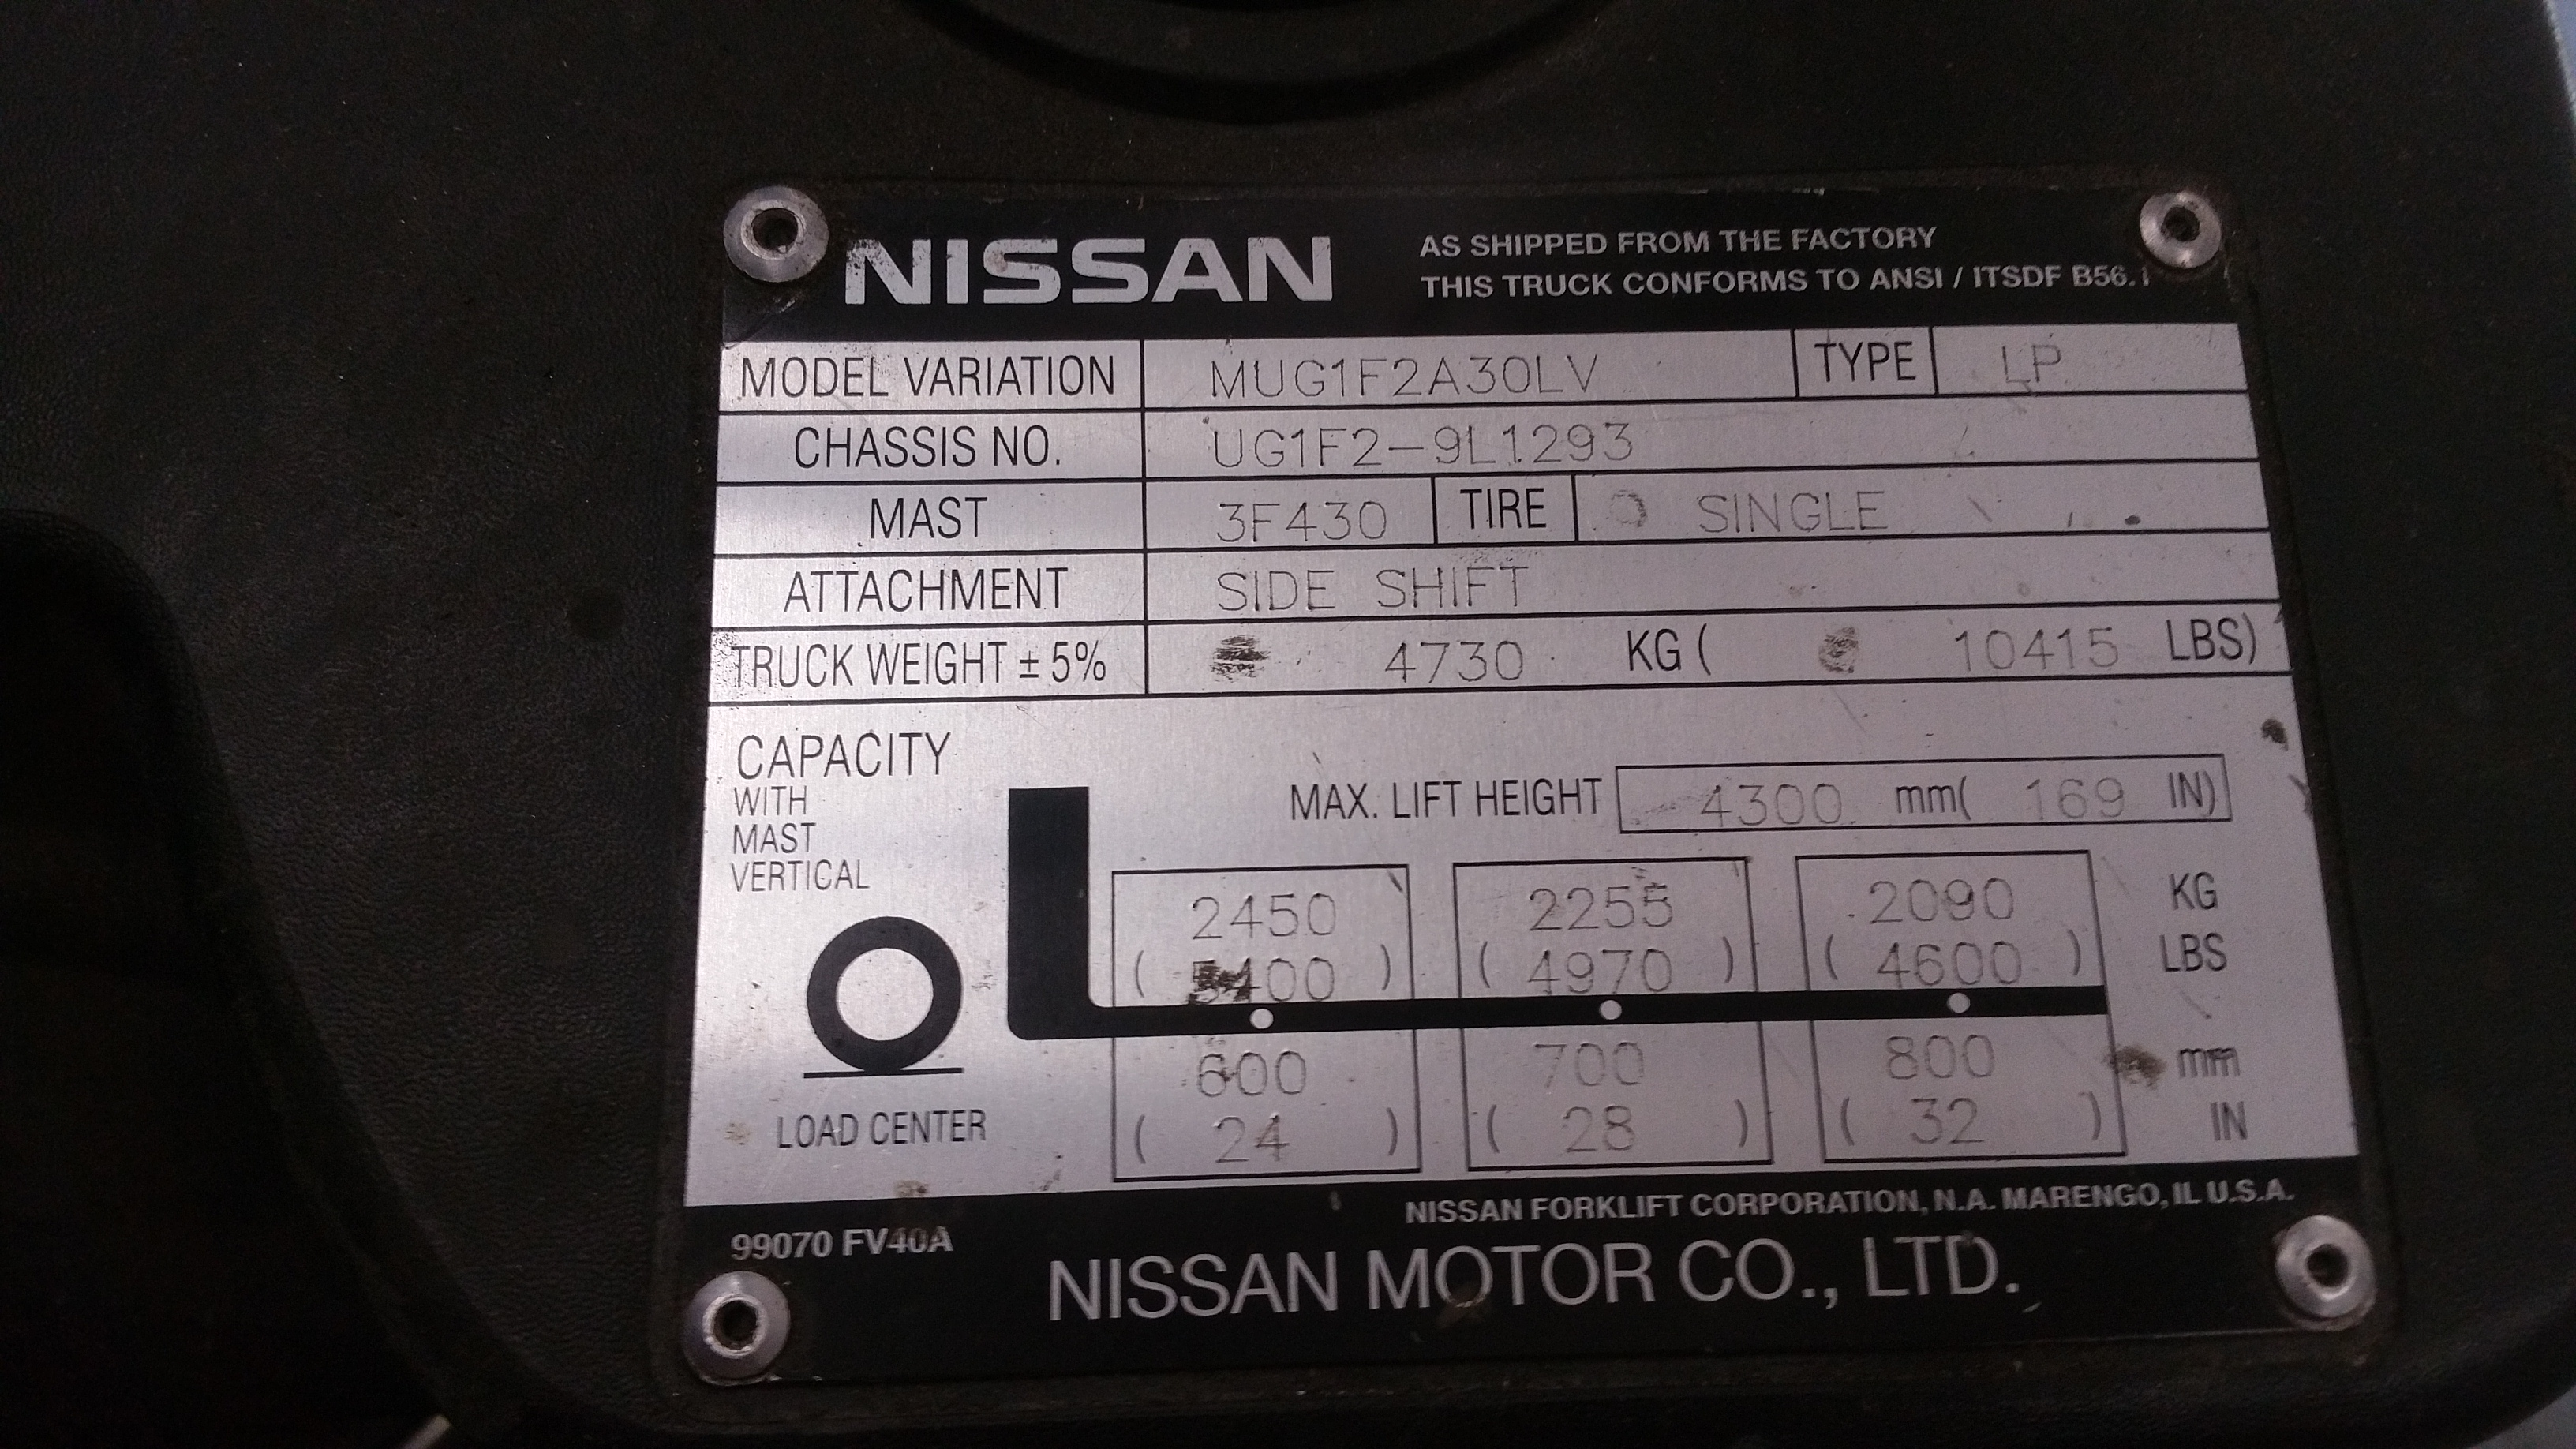 Nissan model mug1f2a30lv forklift pword default. if thier ... on